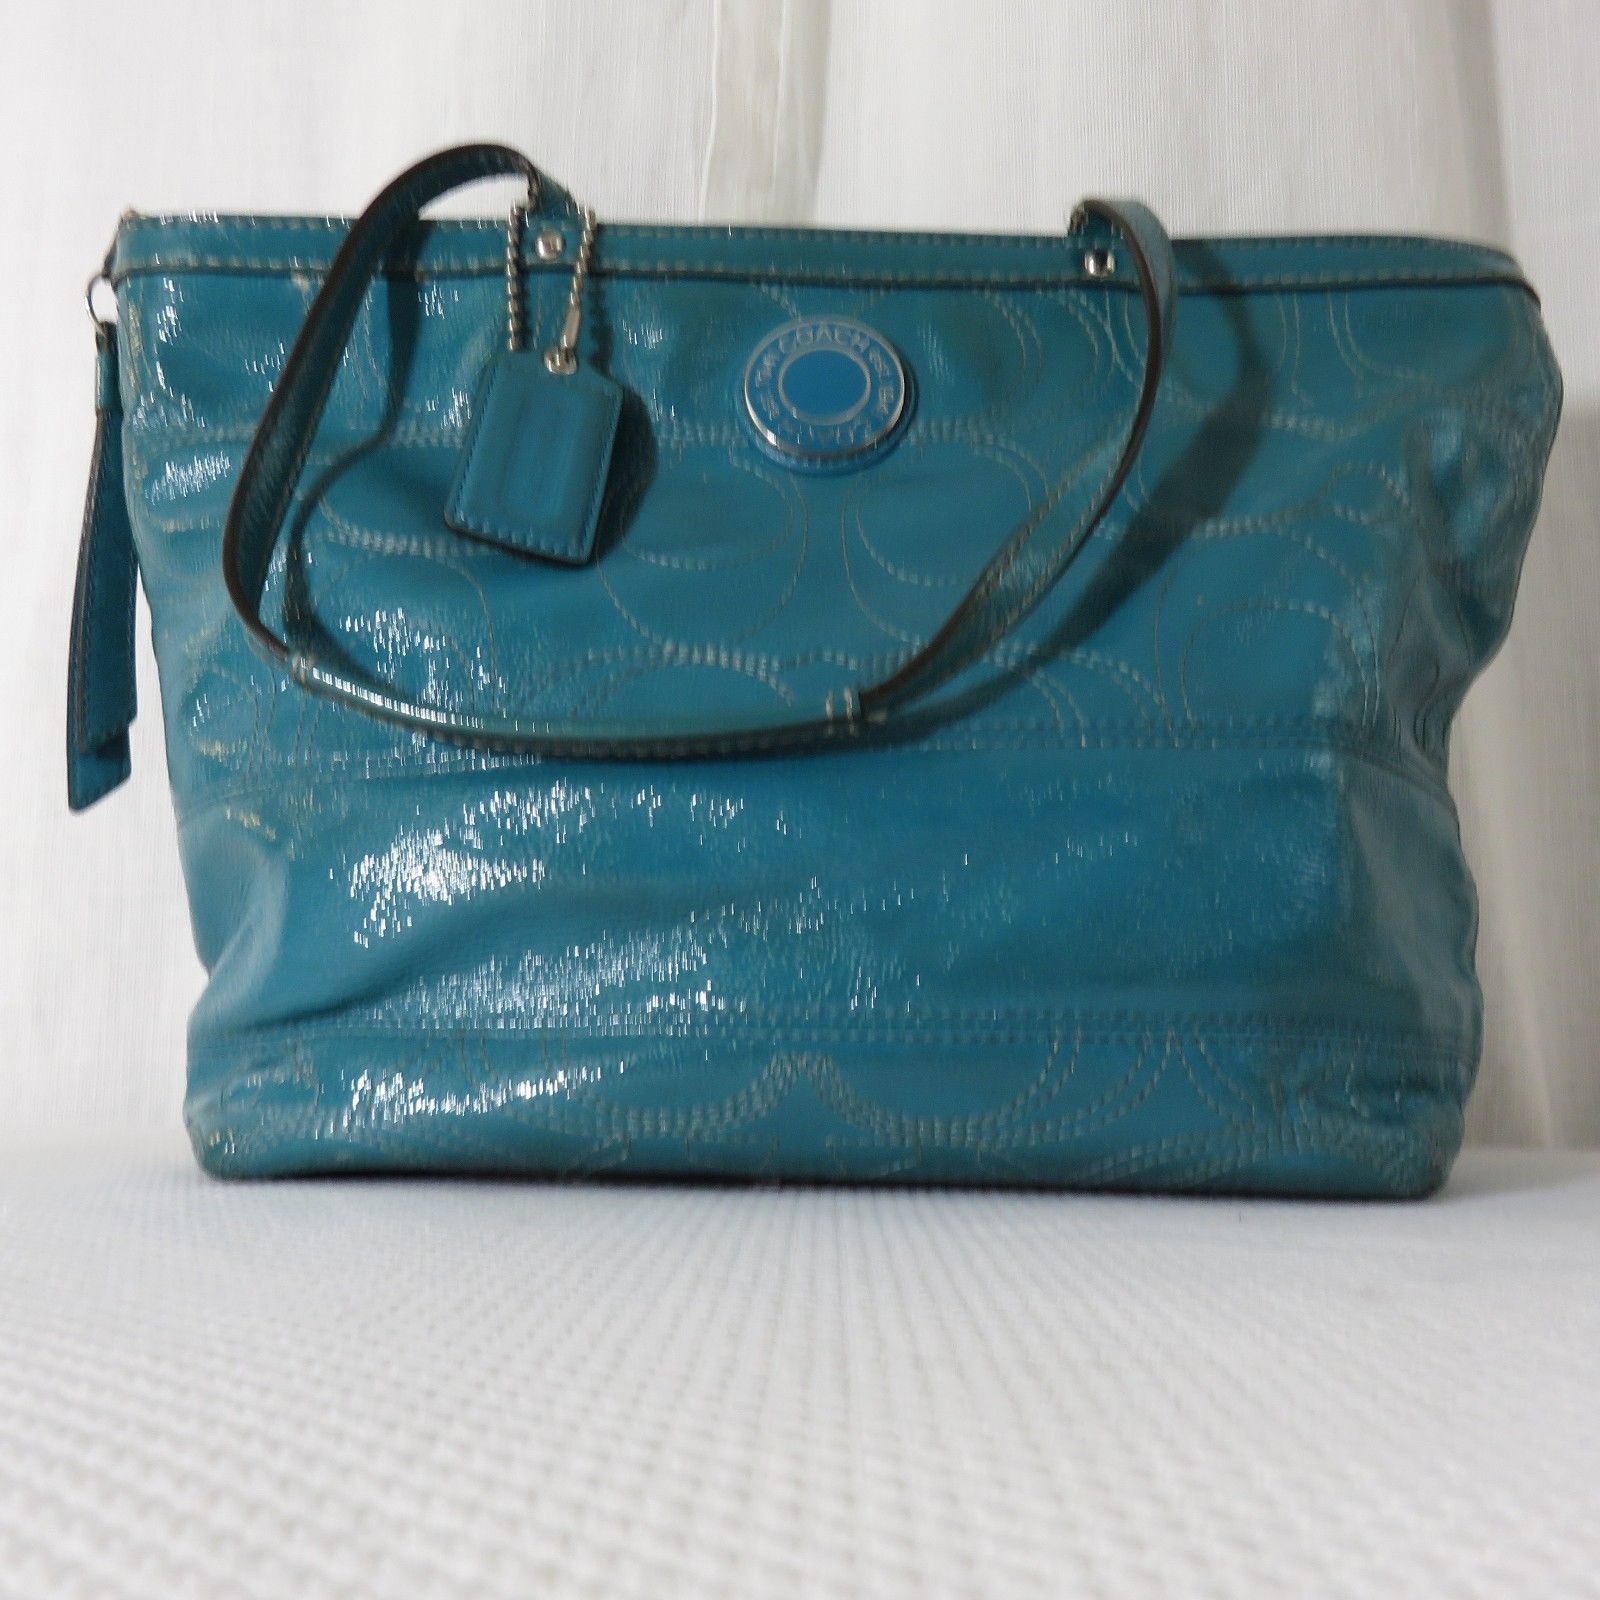 e6340c490ddf1 Signature C Coach Patent Leather Tote Bag and 49 similar items. S l1600